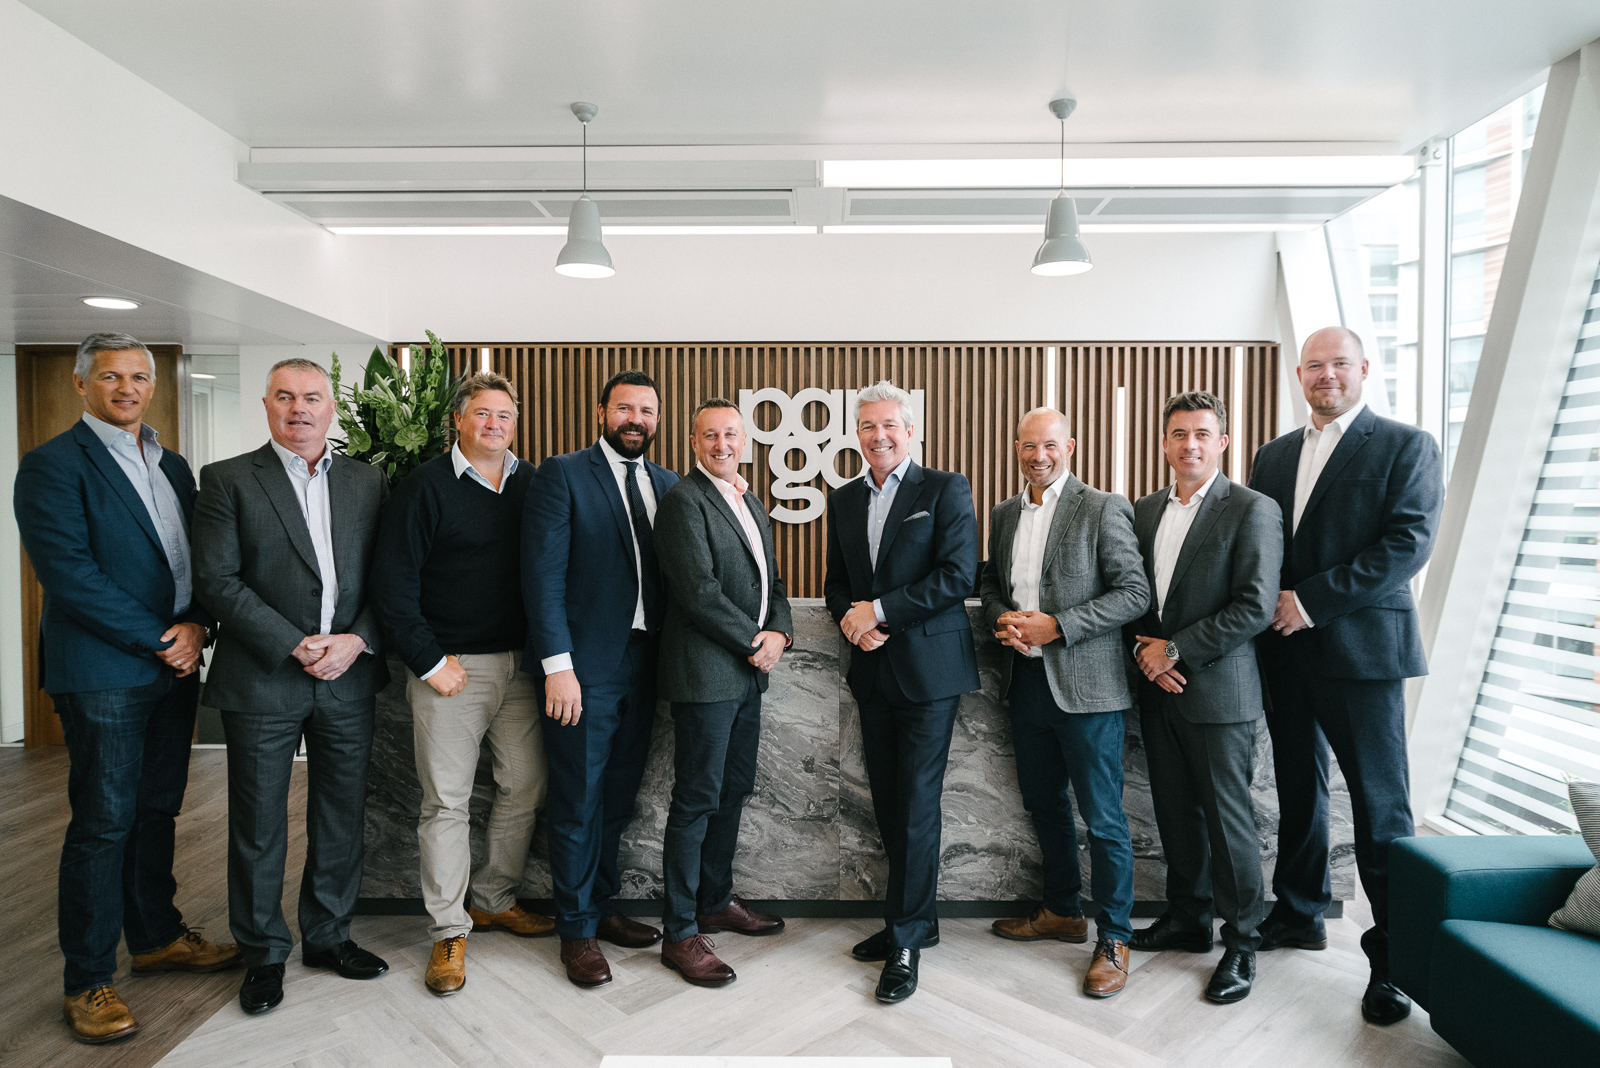 Building Consultancy Paragon expands with London office relocation to Harlequin Building, Southwark